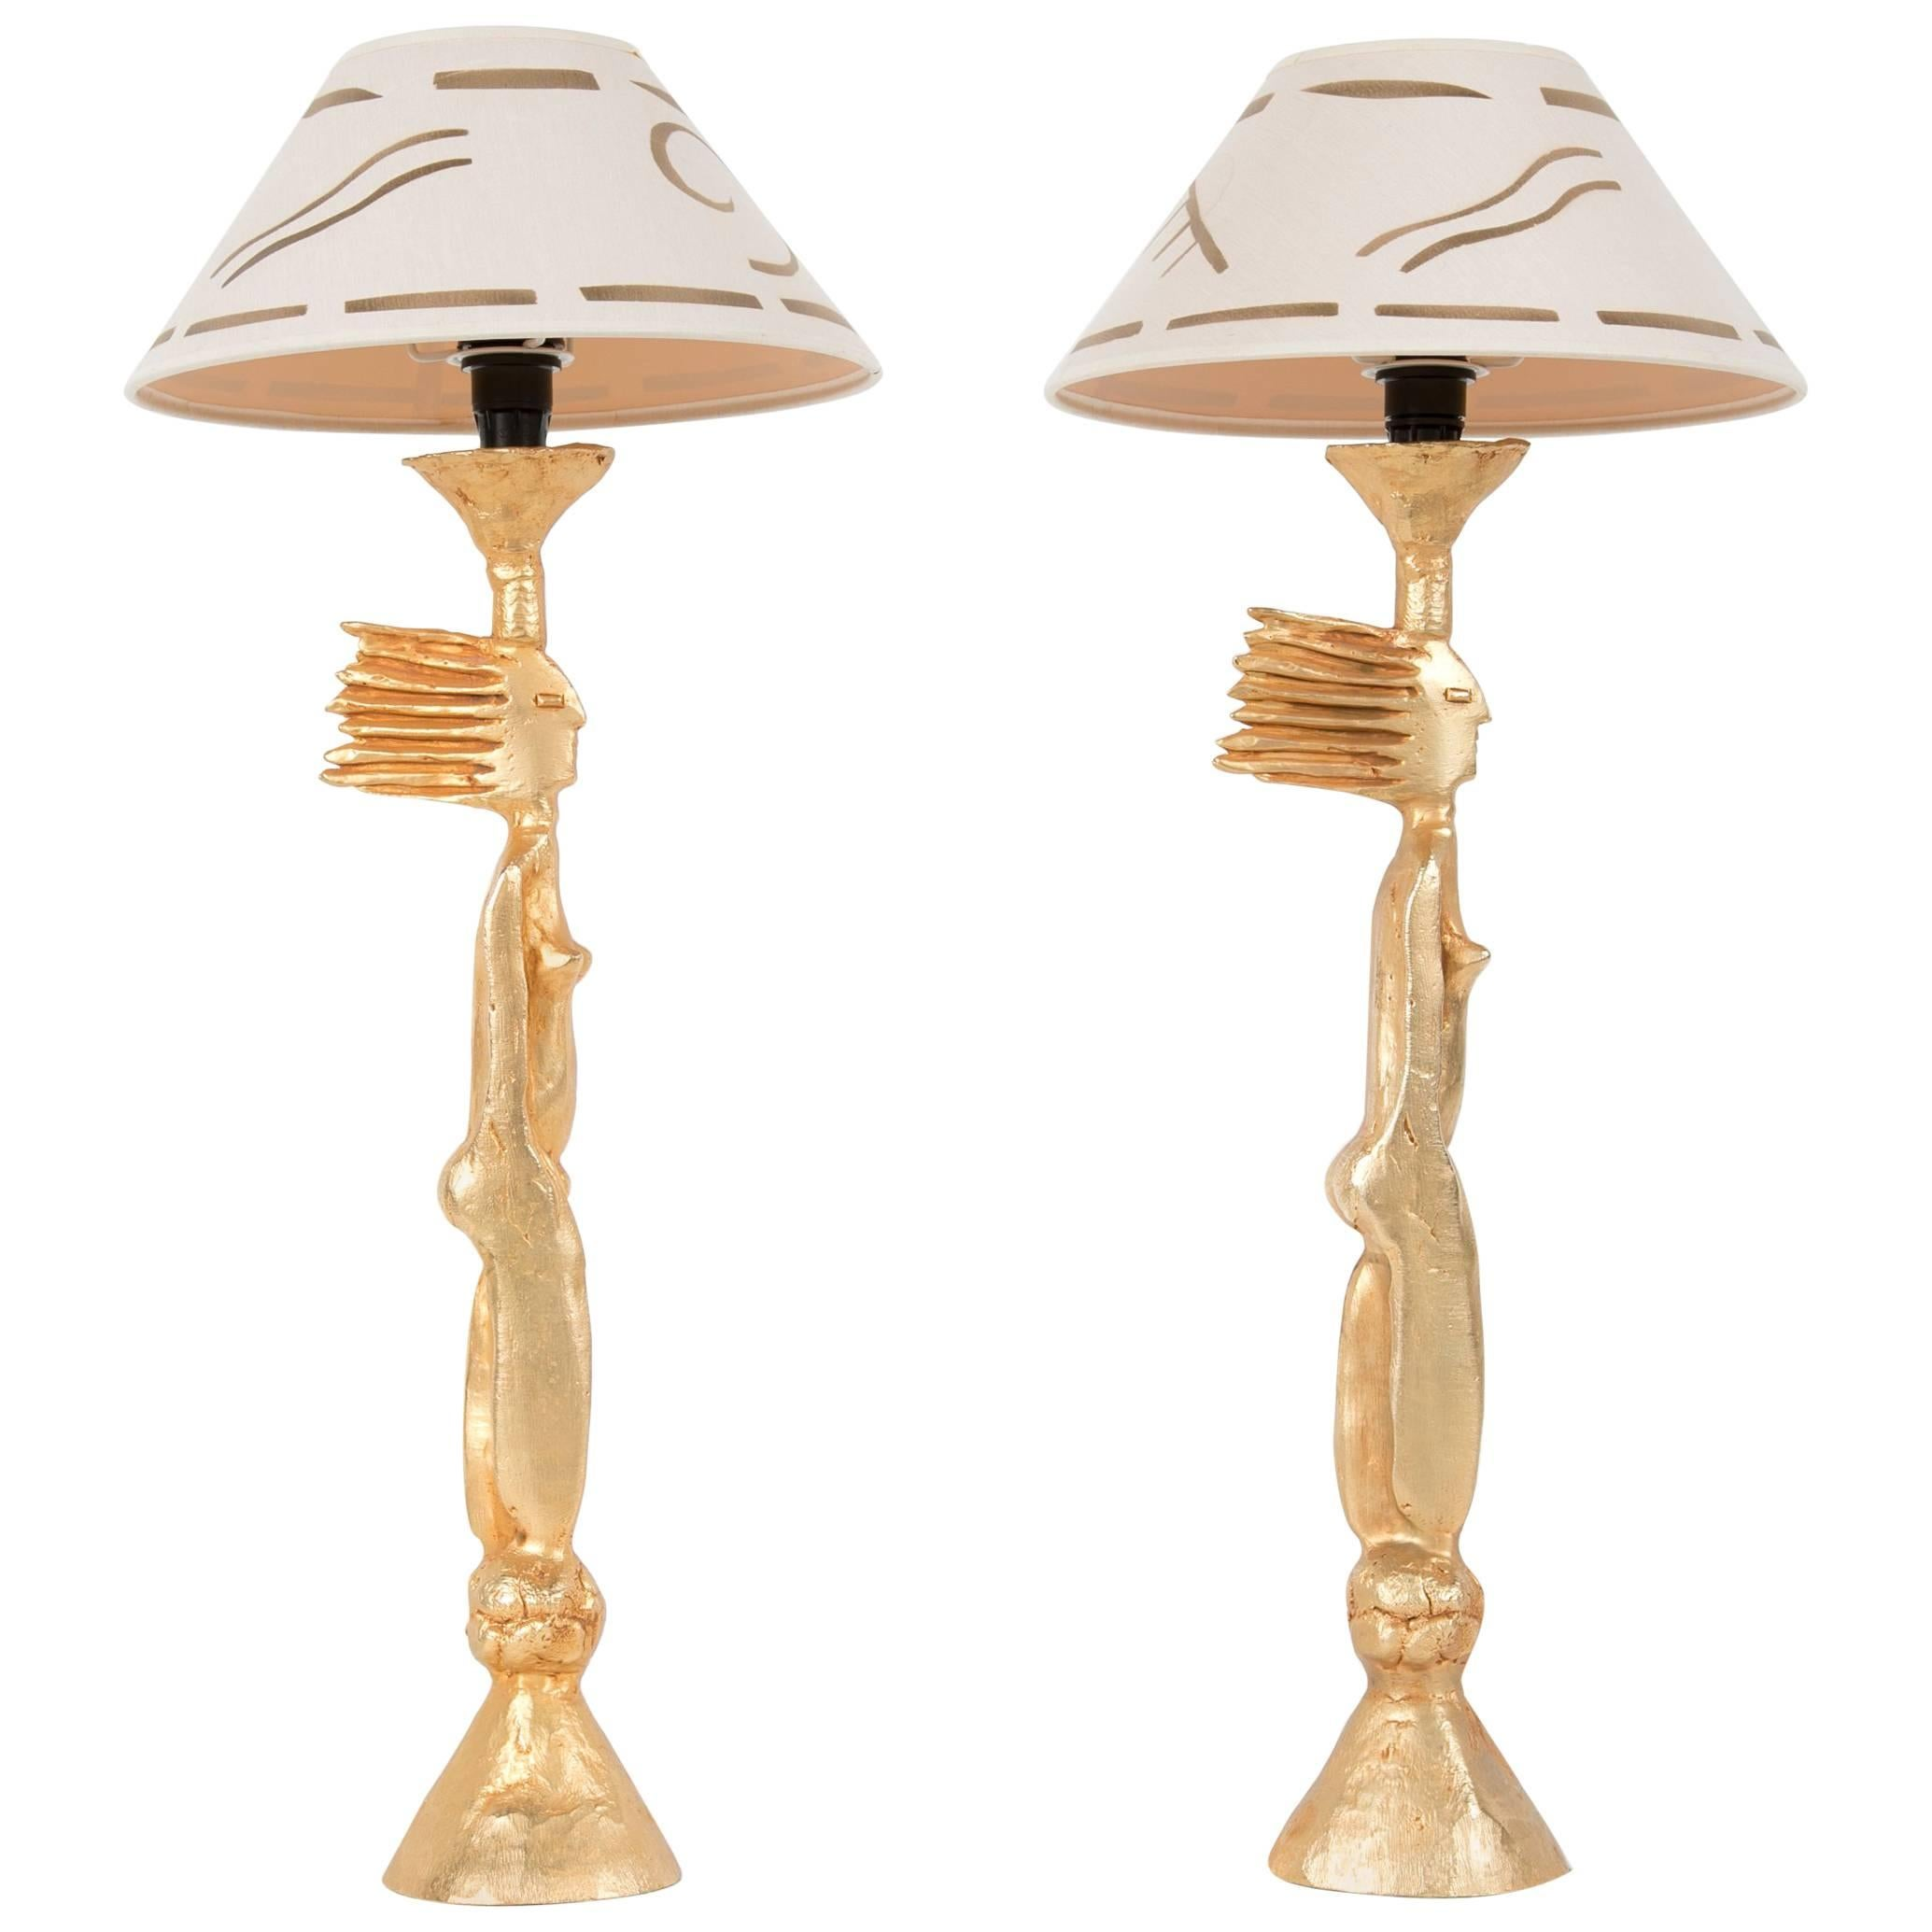 Pair of Gold-Plated Metal Table Lamps by Pierre Casenove with Original Shade